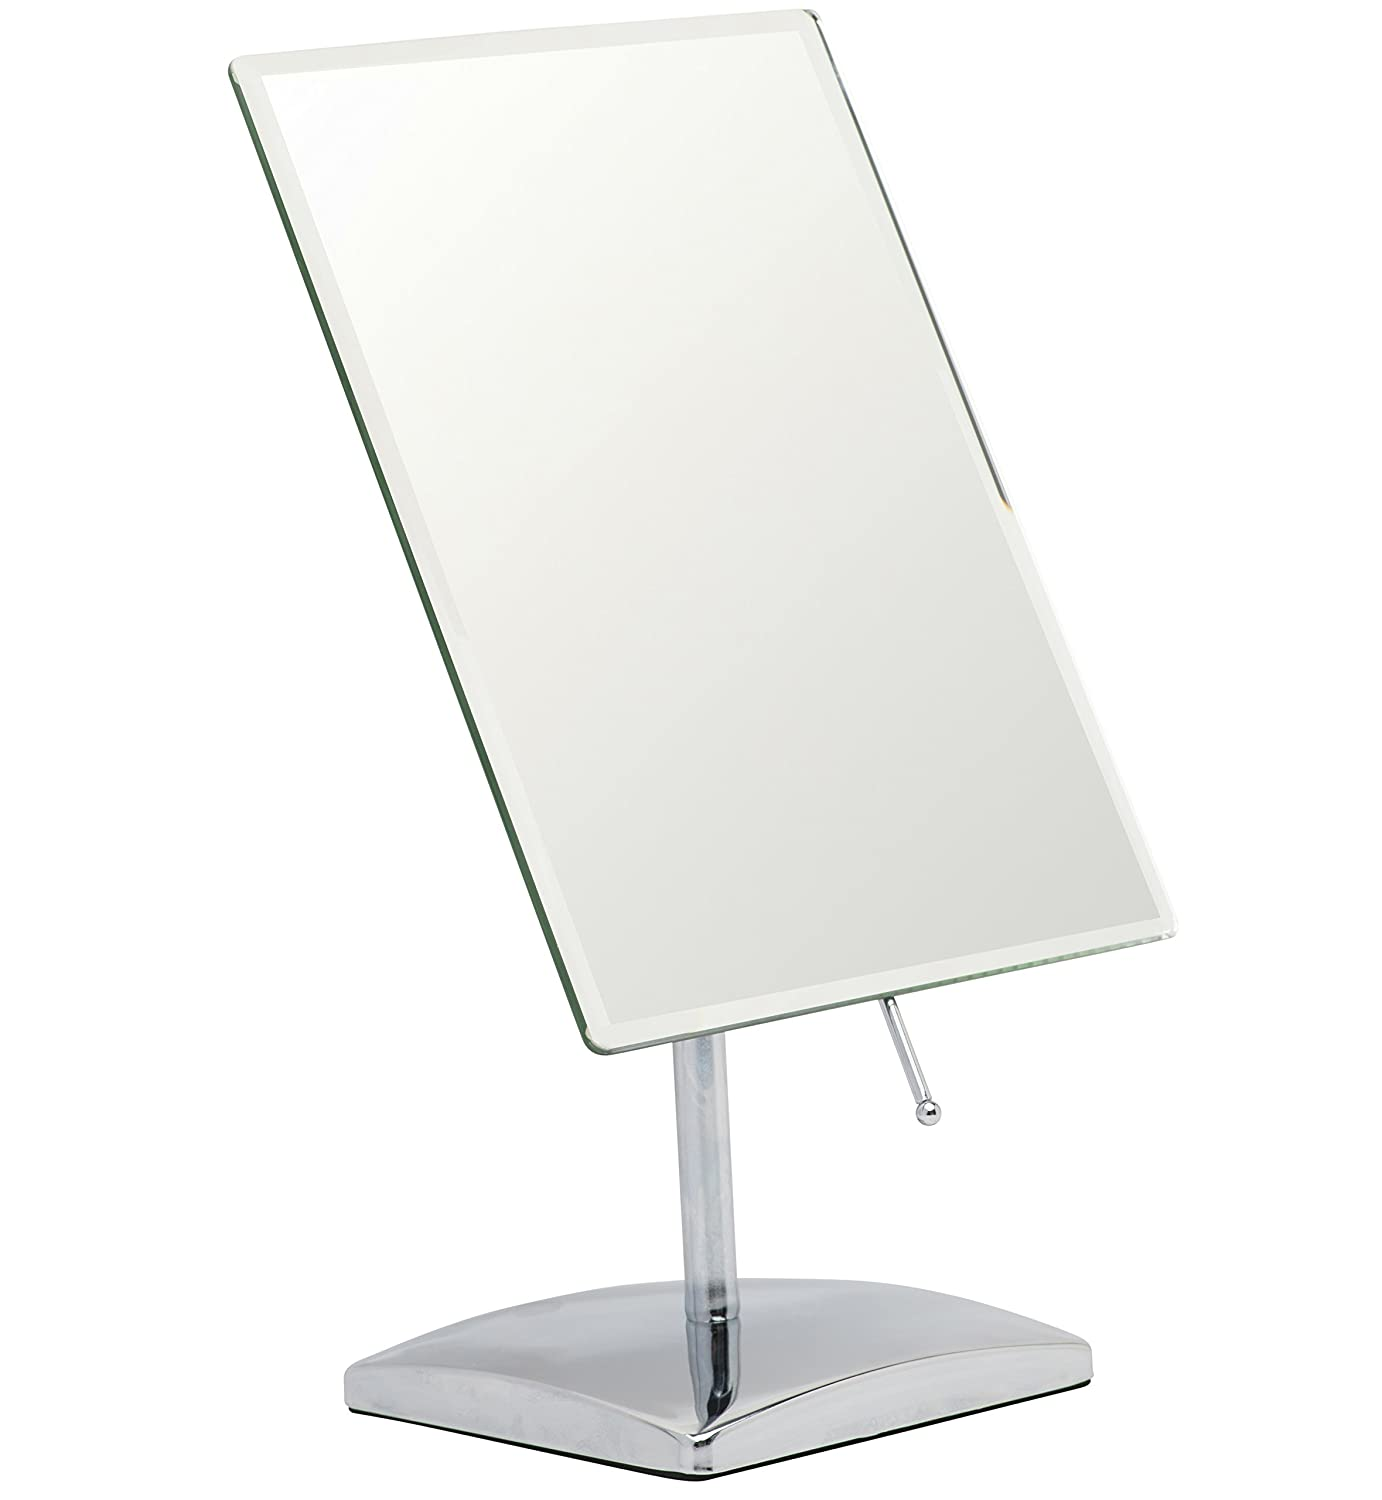 "Mirrorvana Rectangular Vanity Makeup Mirror ~ Elegant Frameless Design for Bedroom Table or Bathroom Countertop ~ Large Non-Magnifying 9.8"" x 7"" Glass Reflection, Chrome Finish"